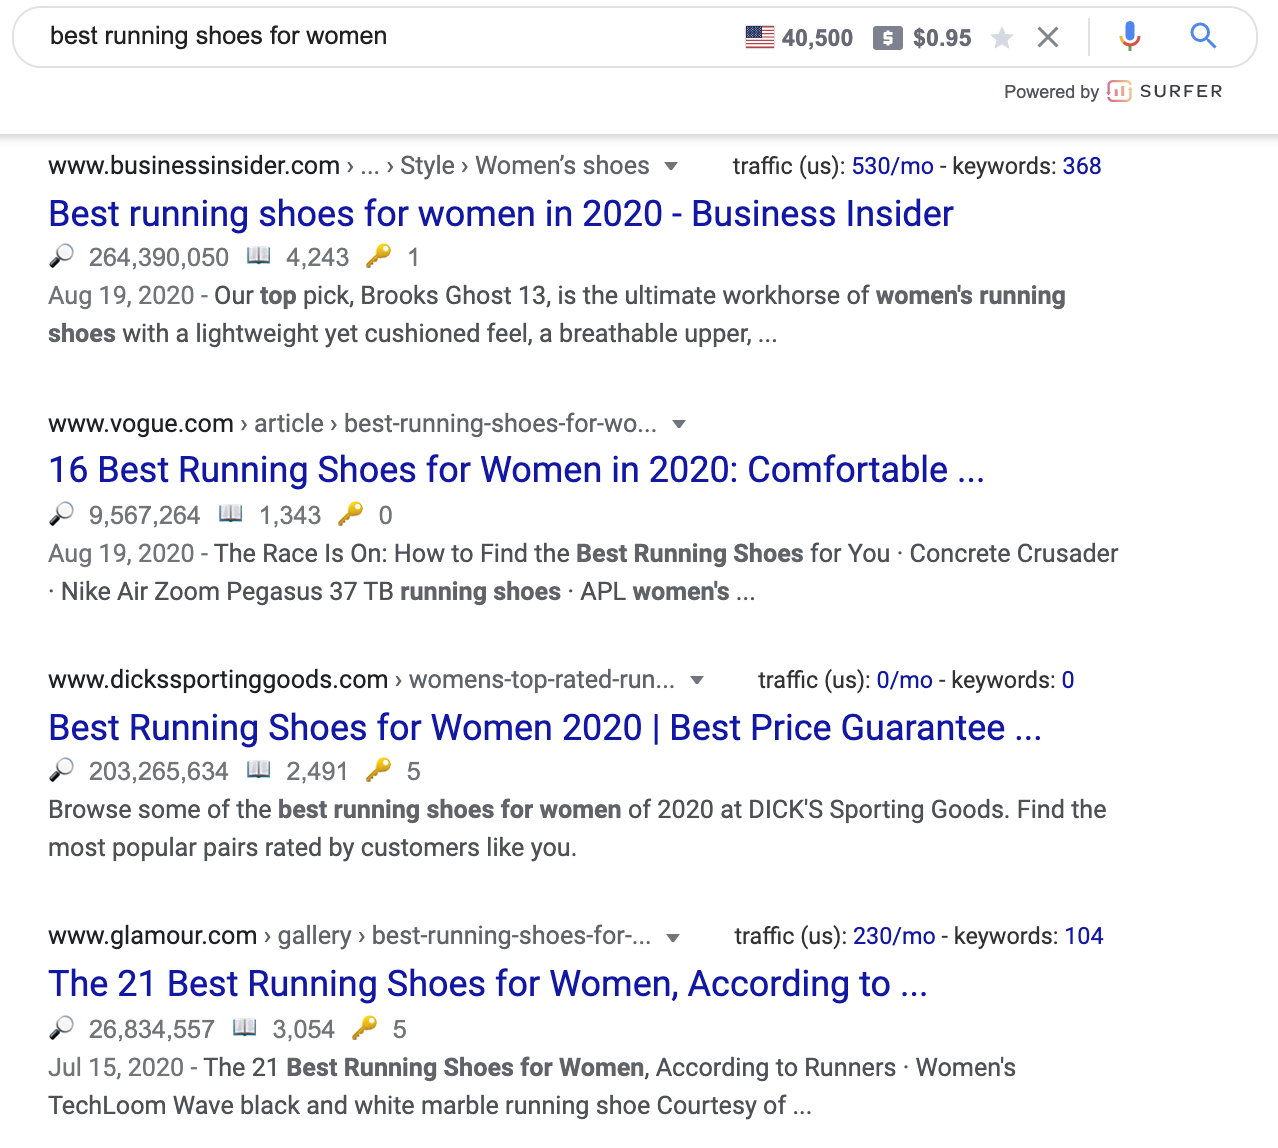 google search result for best running shoes for women shows review articles